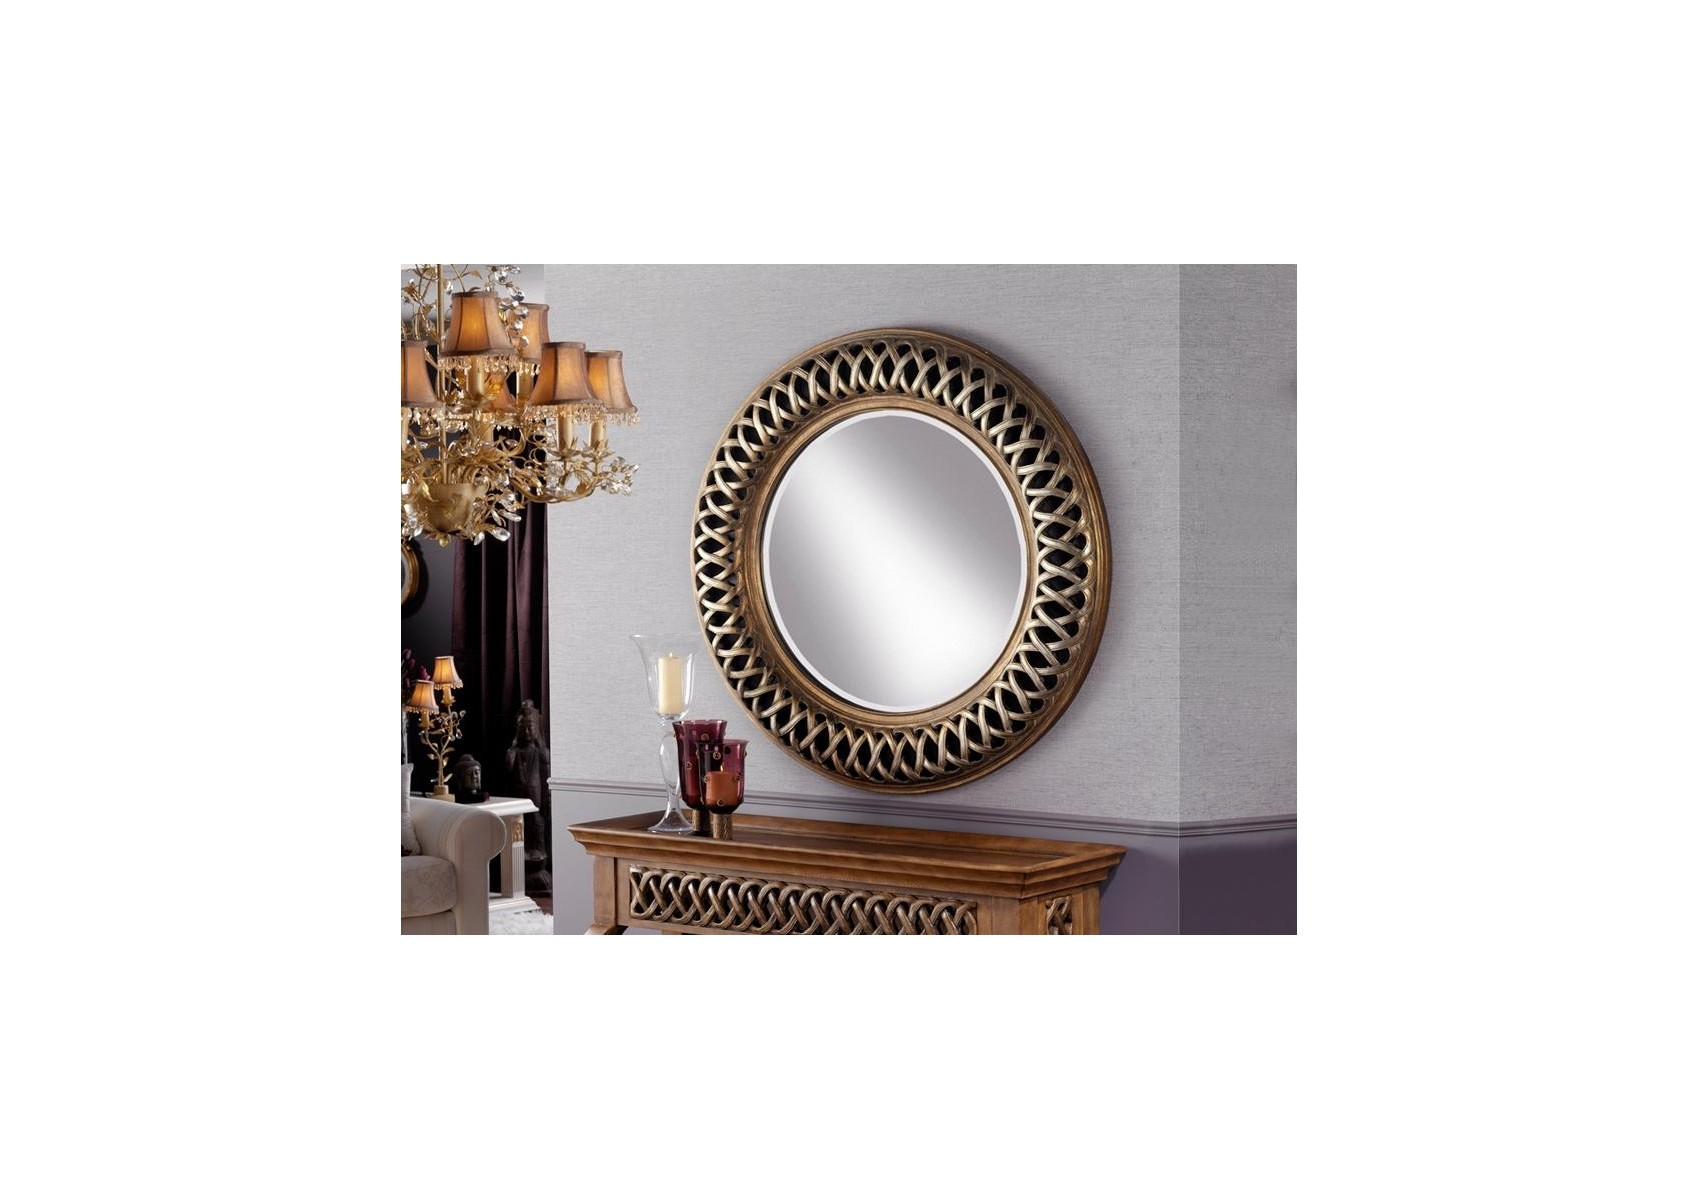 miroir original design rond ajoure argent et or deco schuller boite design. Black Bedroom Furniture Sets. Home Design Ideas